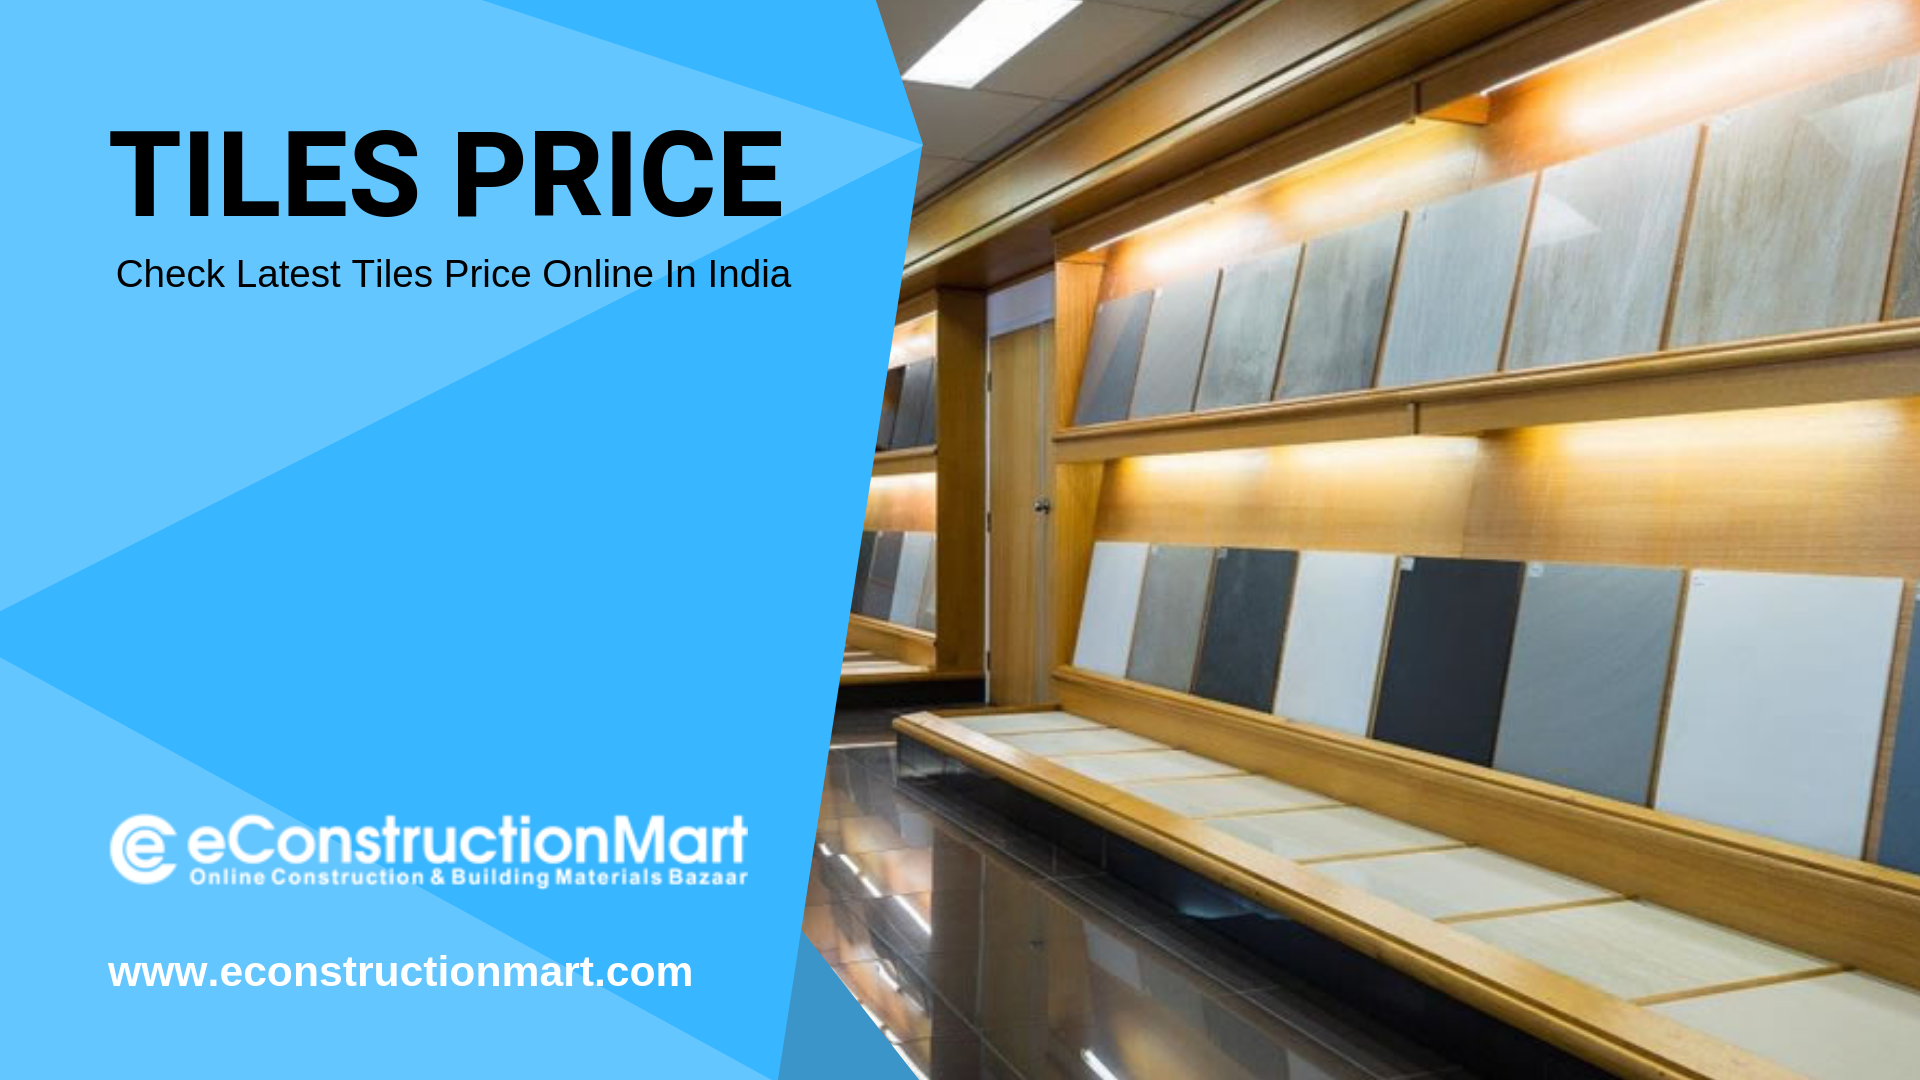 Pin by eConstructionMart on Tiles Tiles price, Tiles